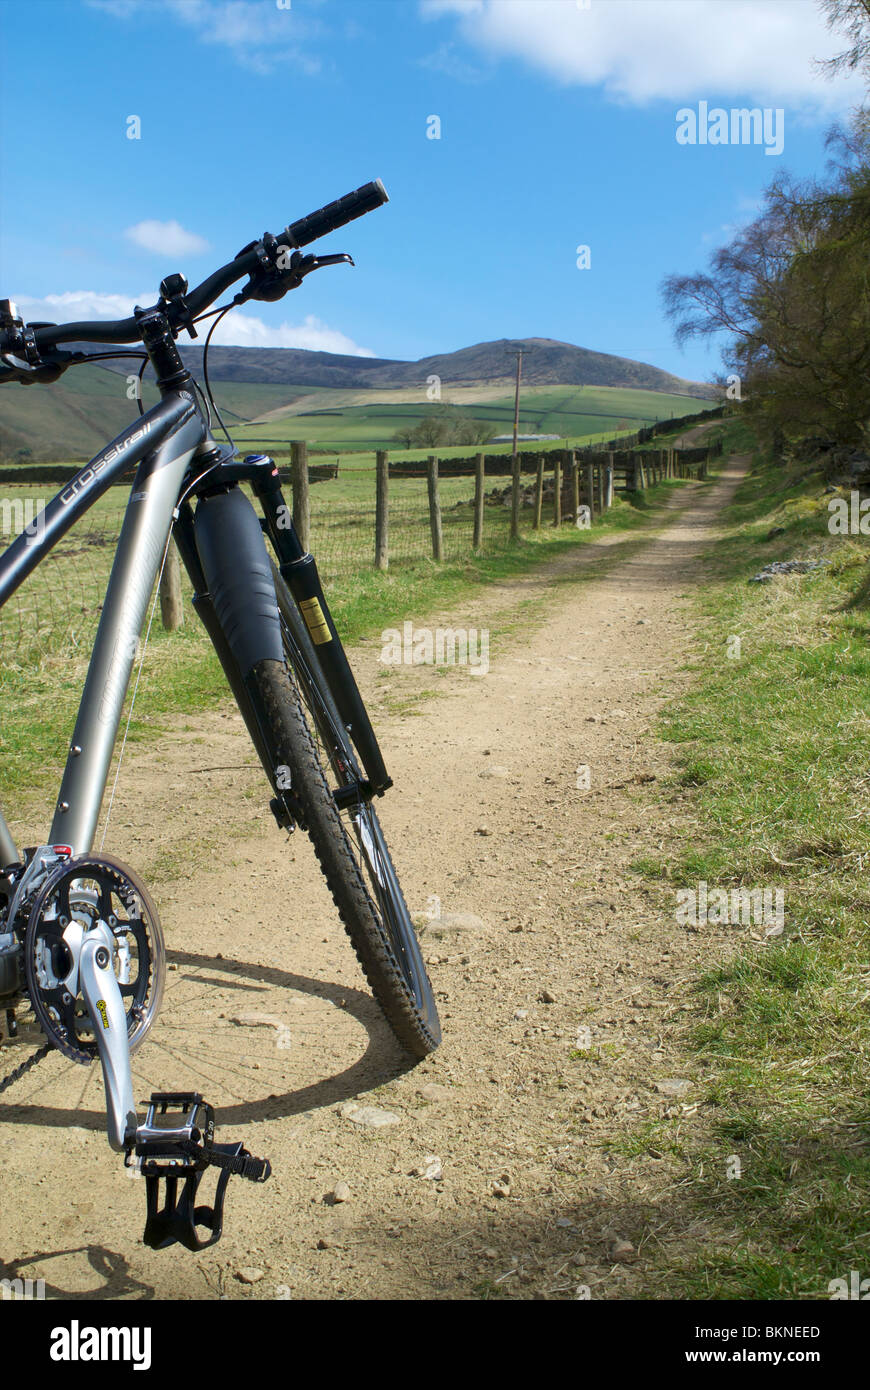 Cycling near Hayfield in the Peak District - Stock Image